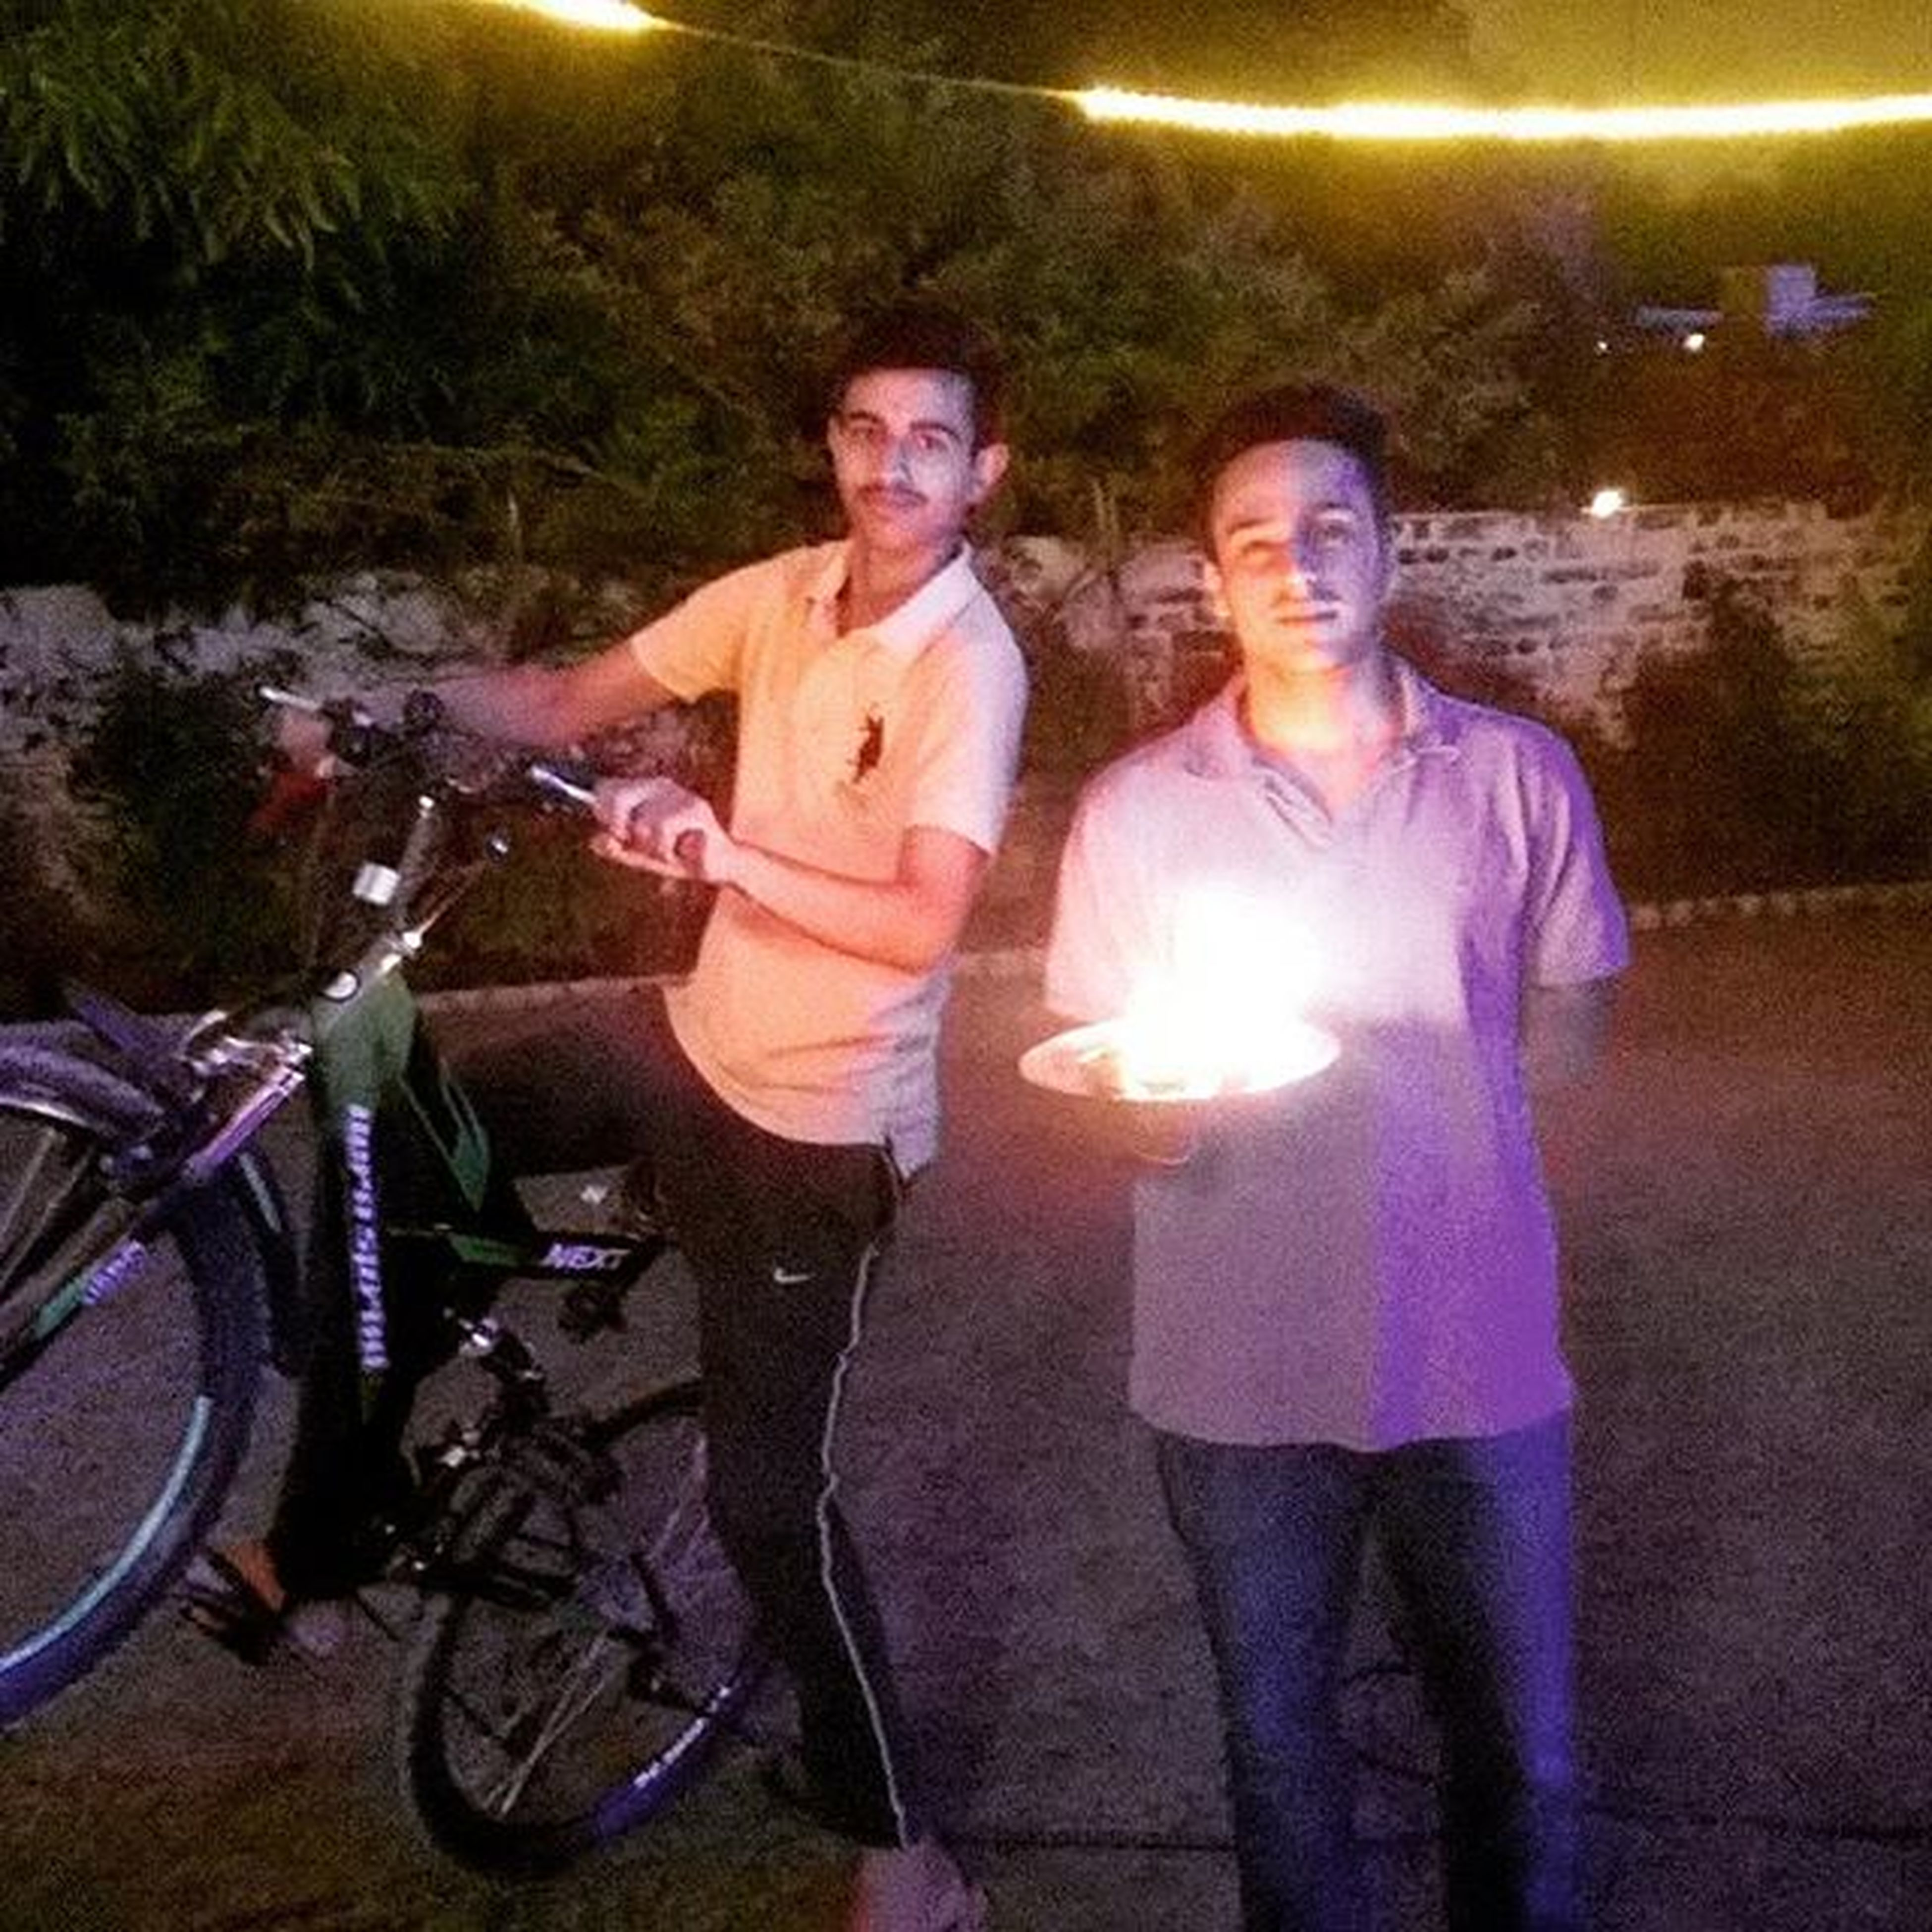 lifestyles, leisure activity, night, casual clothing, illuminated, standing, full length, togetherness, men, young adult, front view, person, bicycle, outdoors, holding, friendship, street